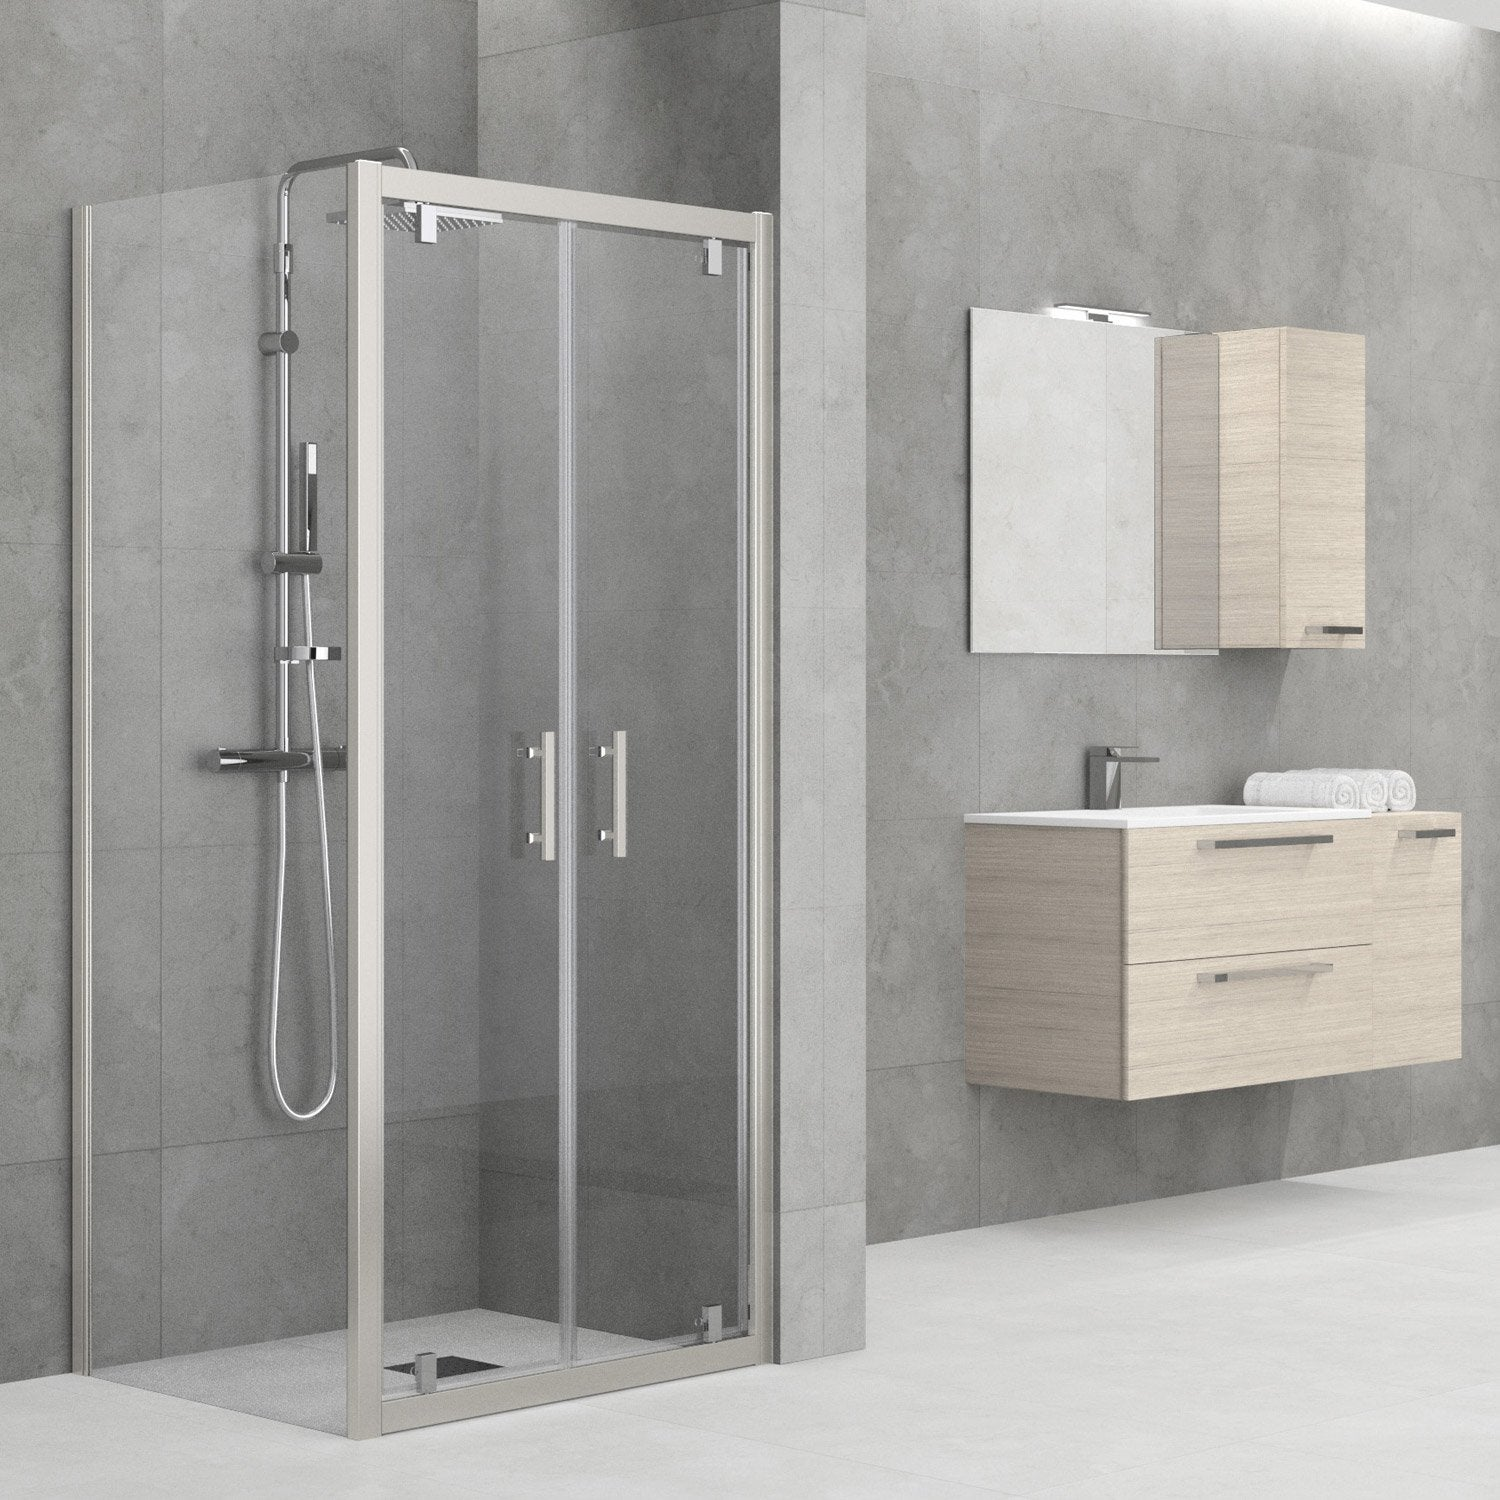 leroymerlin.fr/multimedia/0d1400966623/produits/porte-de-douche-battante-90-96-cm-profile-chrome-elyt